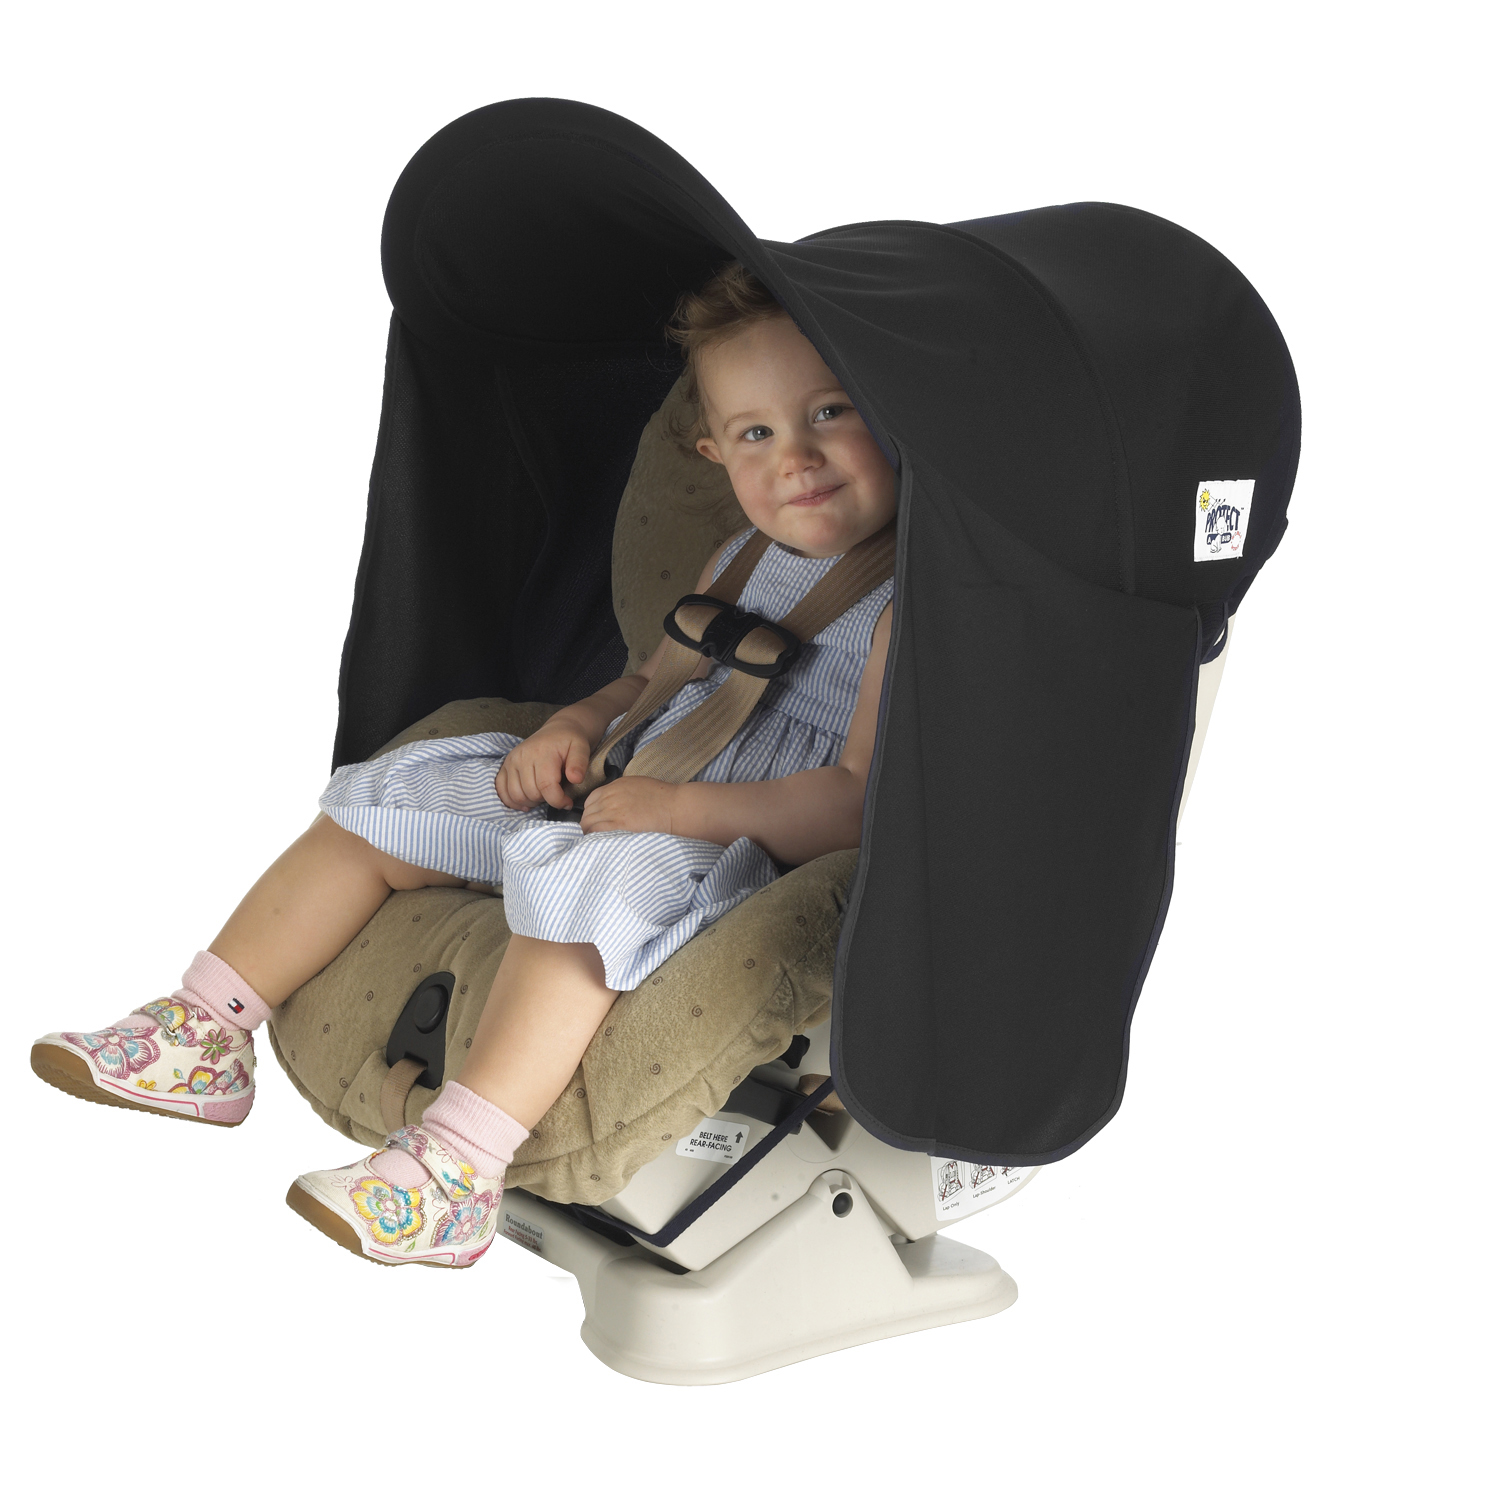 Protect-A-Bub's Car Seat